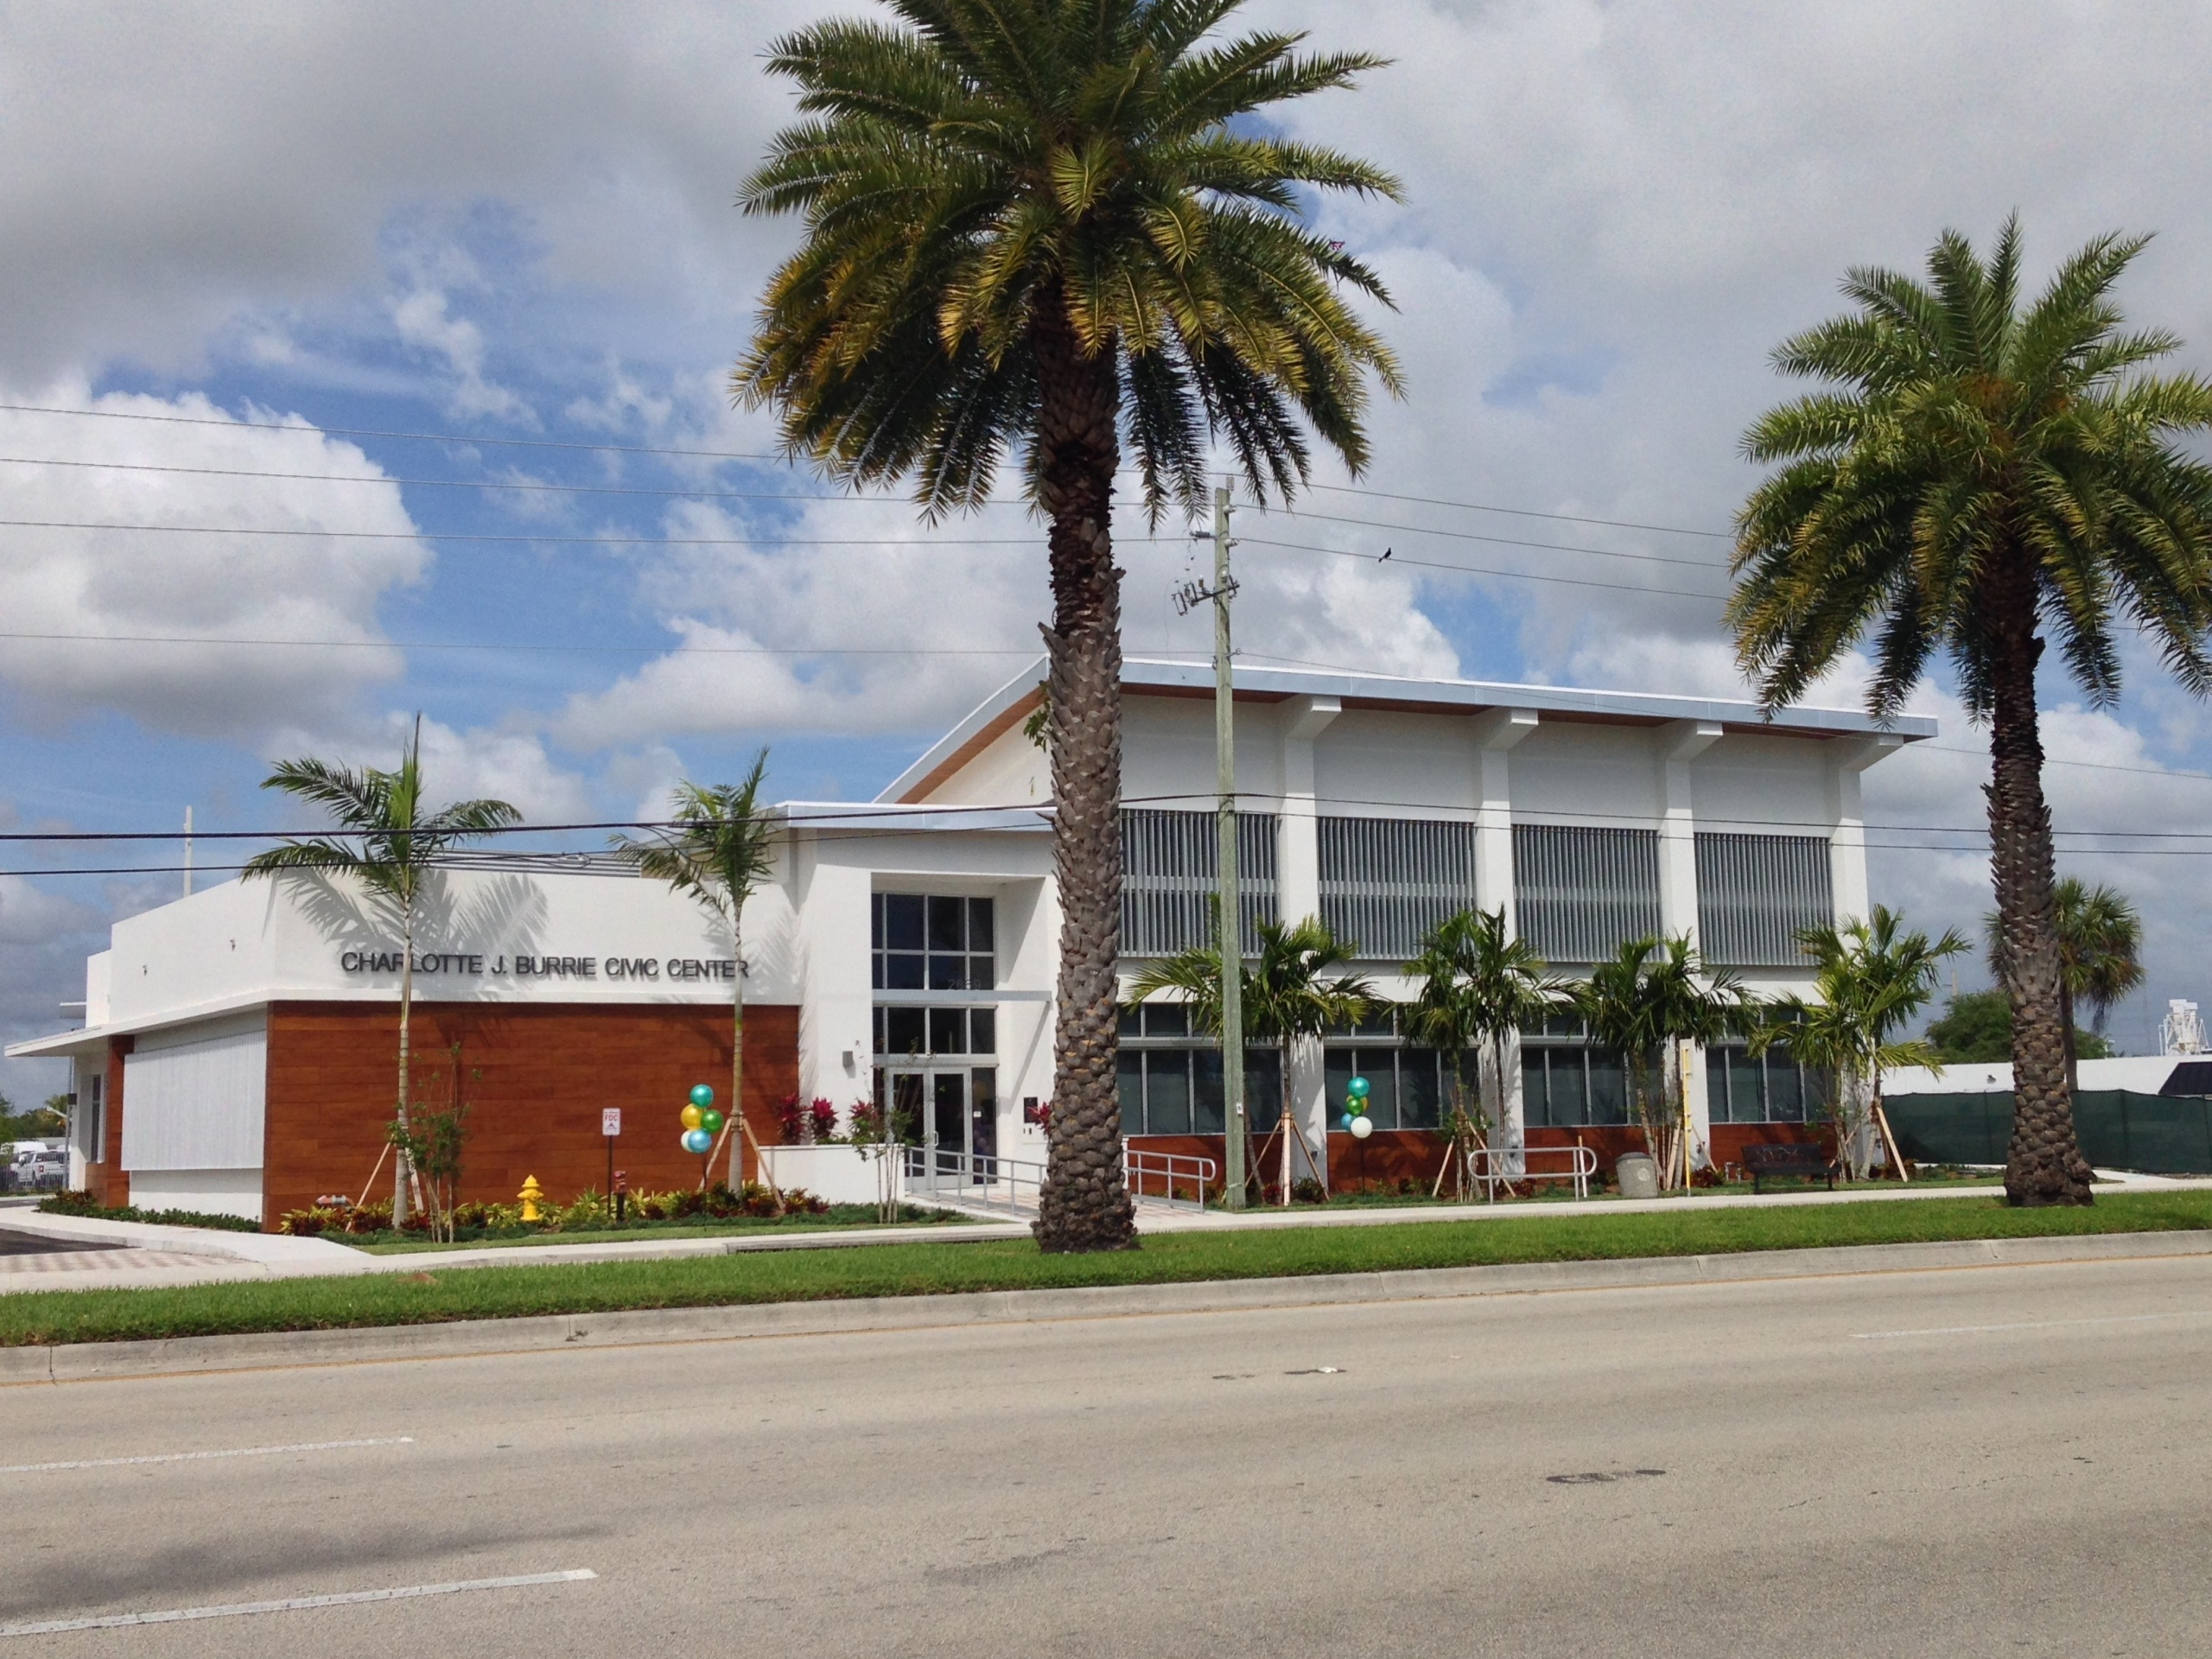 POMPANO BEACH: Long-Awaited Charlotte Burrie Civic Center